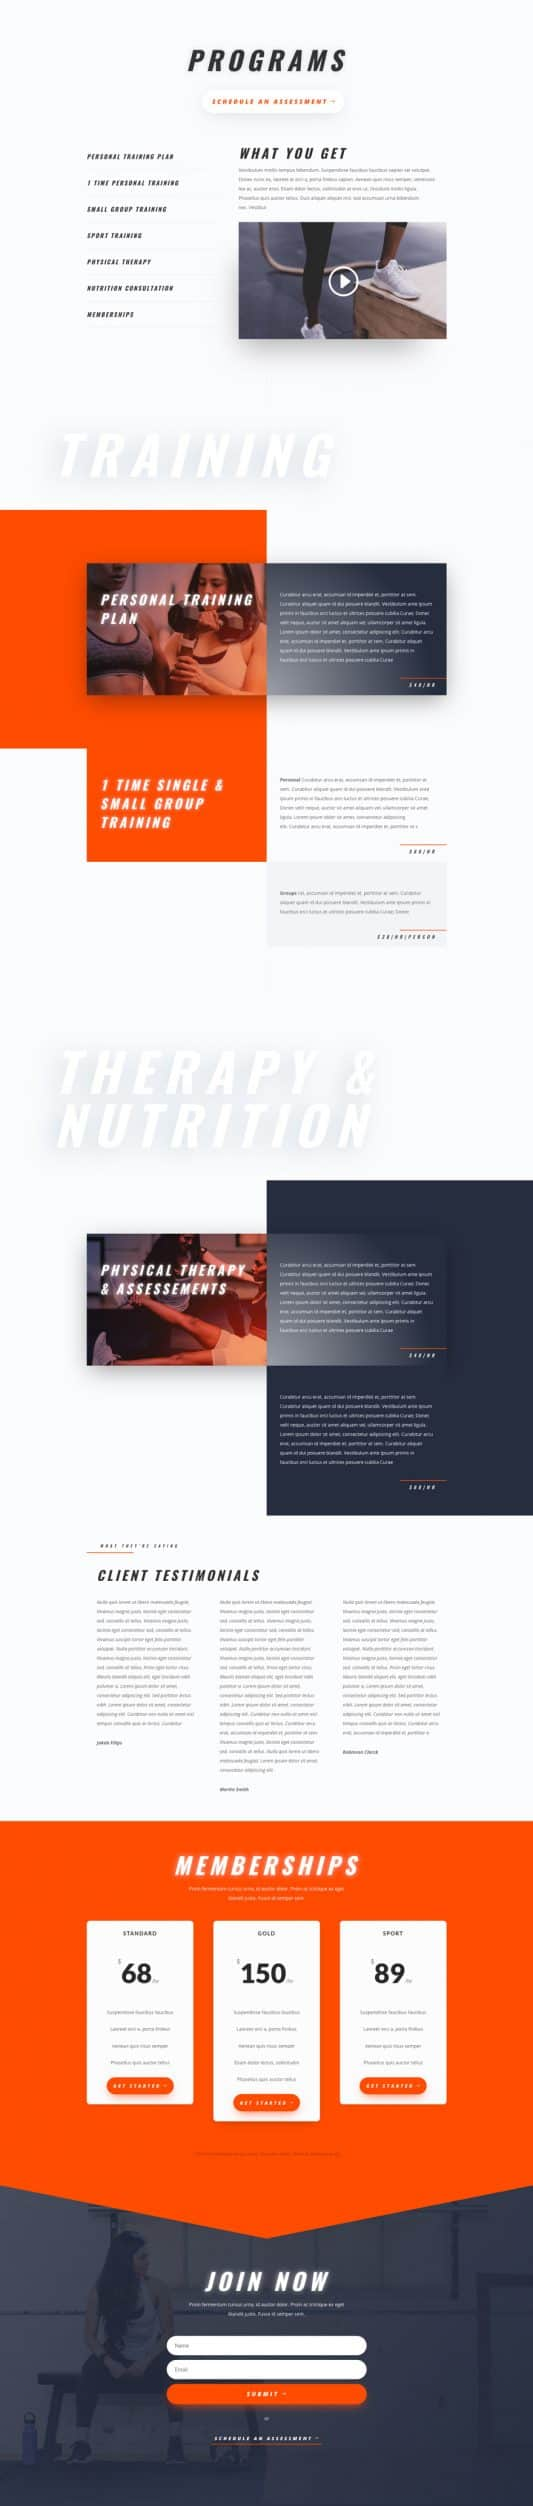 Personal Trainer Services Page Style